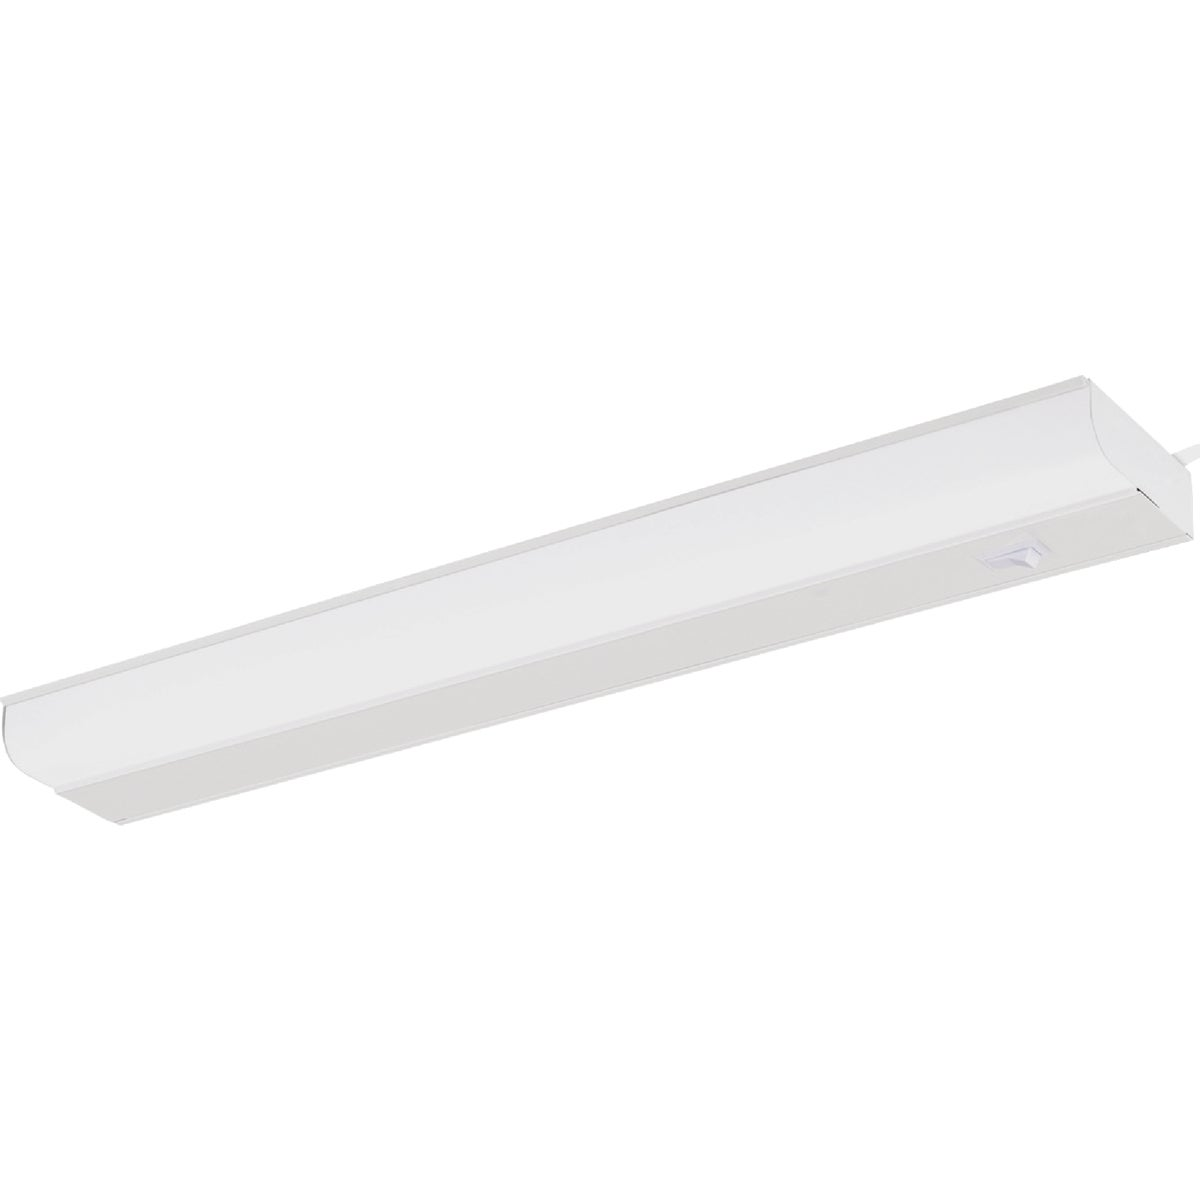 "24"" UNDERCABINET LIGHT - G9124D-T8-WHI by Good Earth Lighting"